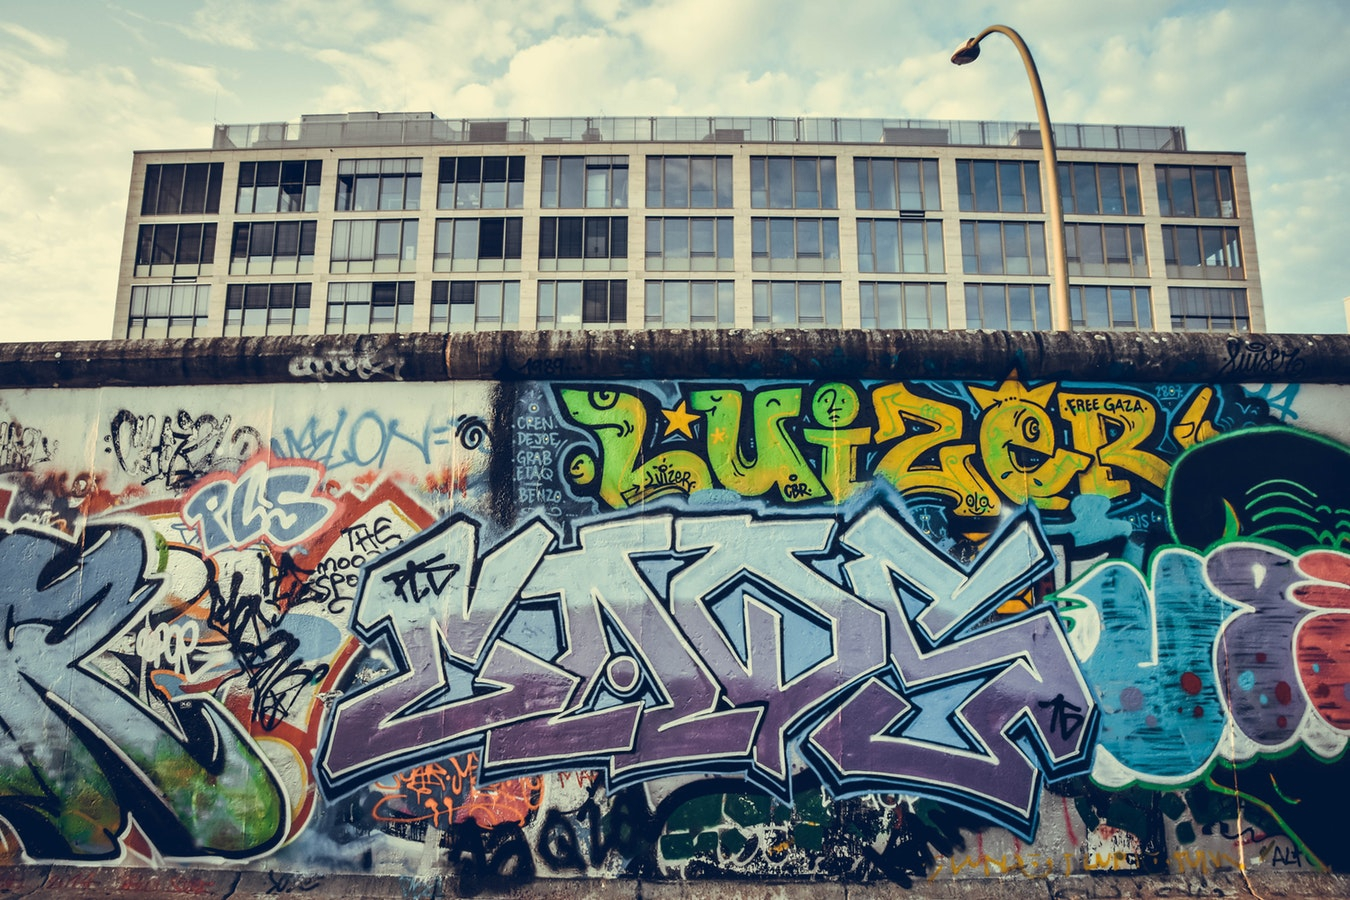 All about the Berlin Wall